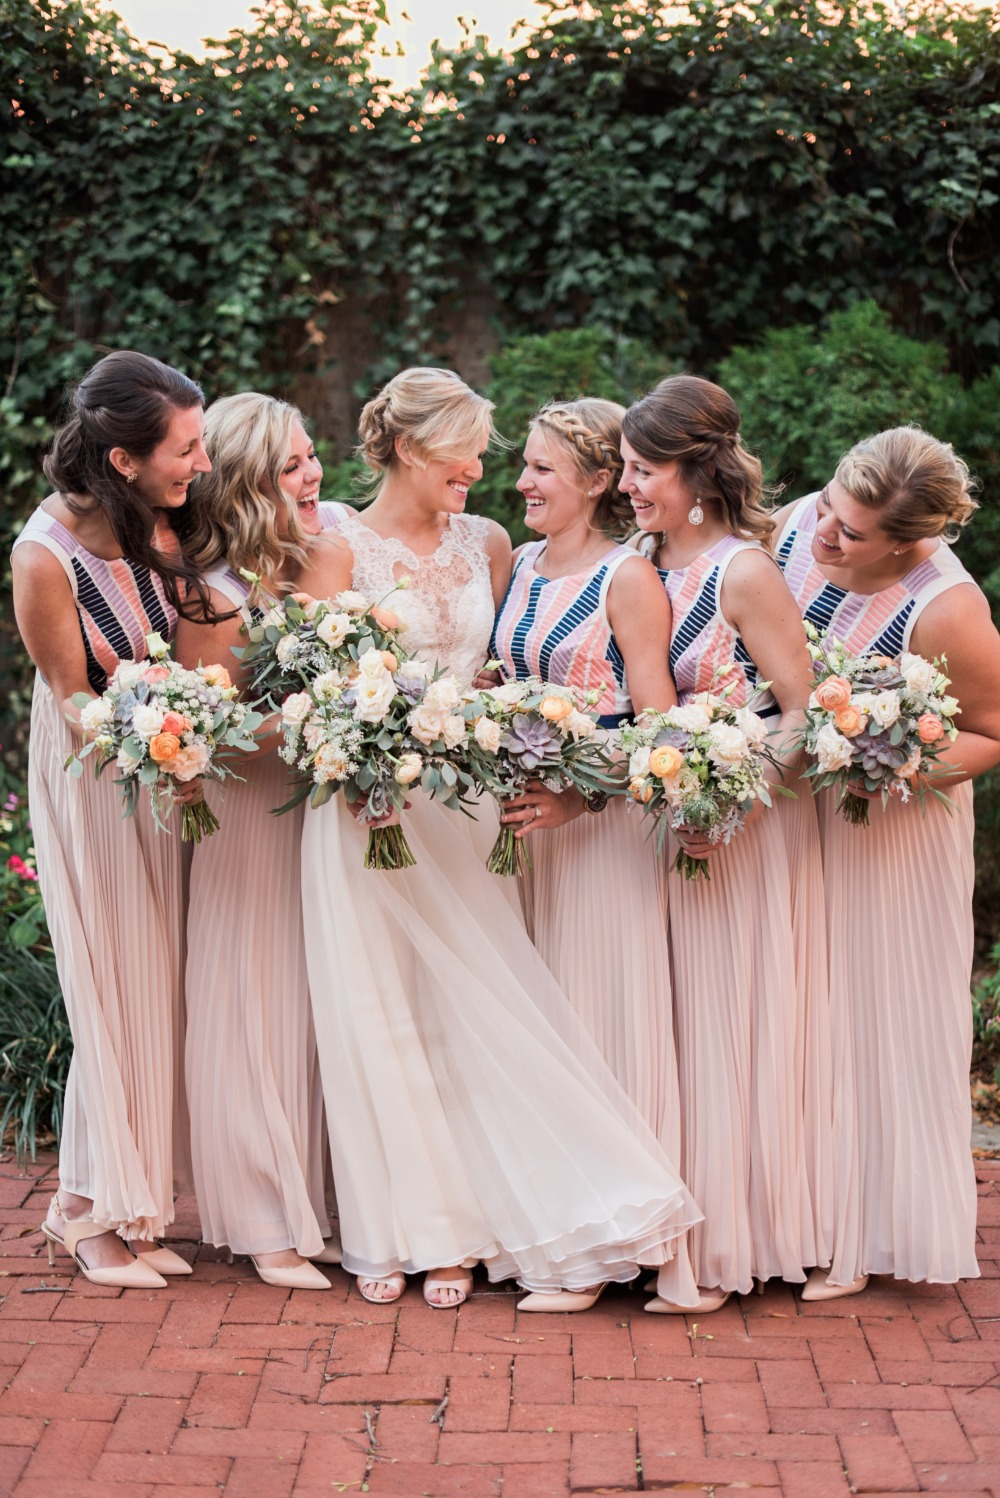 BHLDN bridesmaids dresses in vintage style